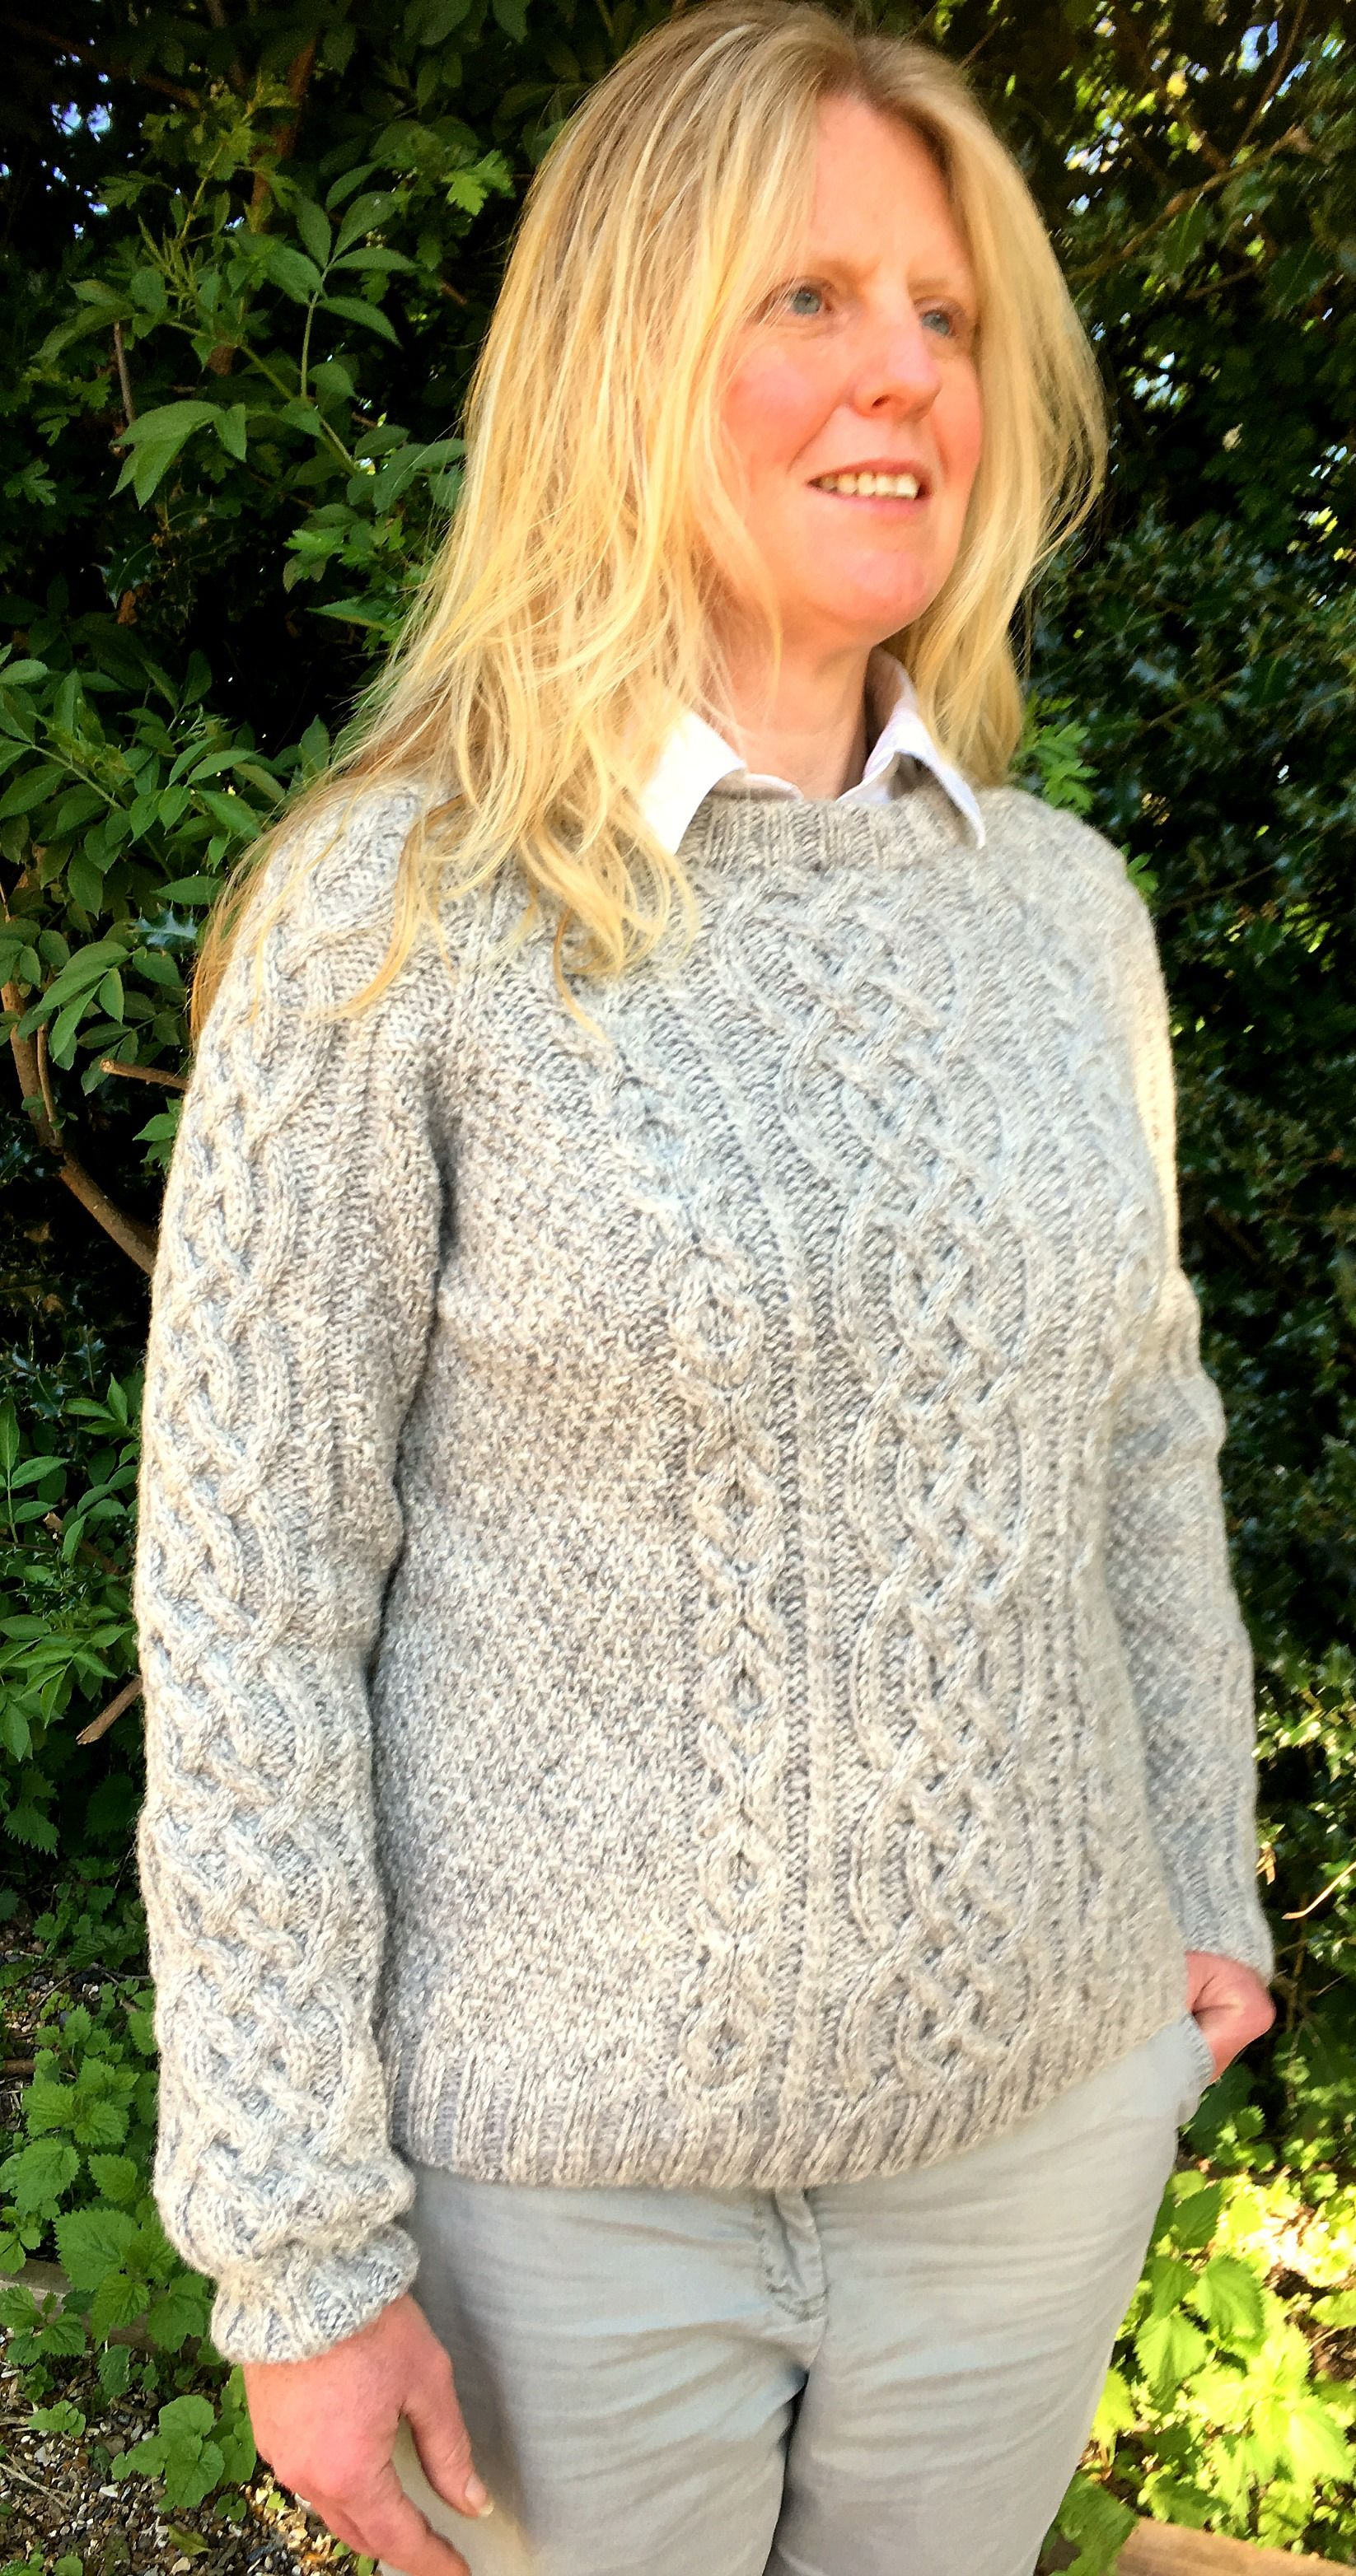 bde3ac82a Unisex Pure Scottish Aran Wool Sweater in Grey - chest size 38-40